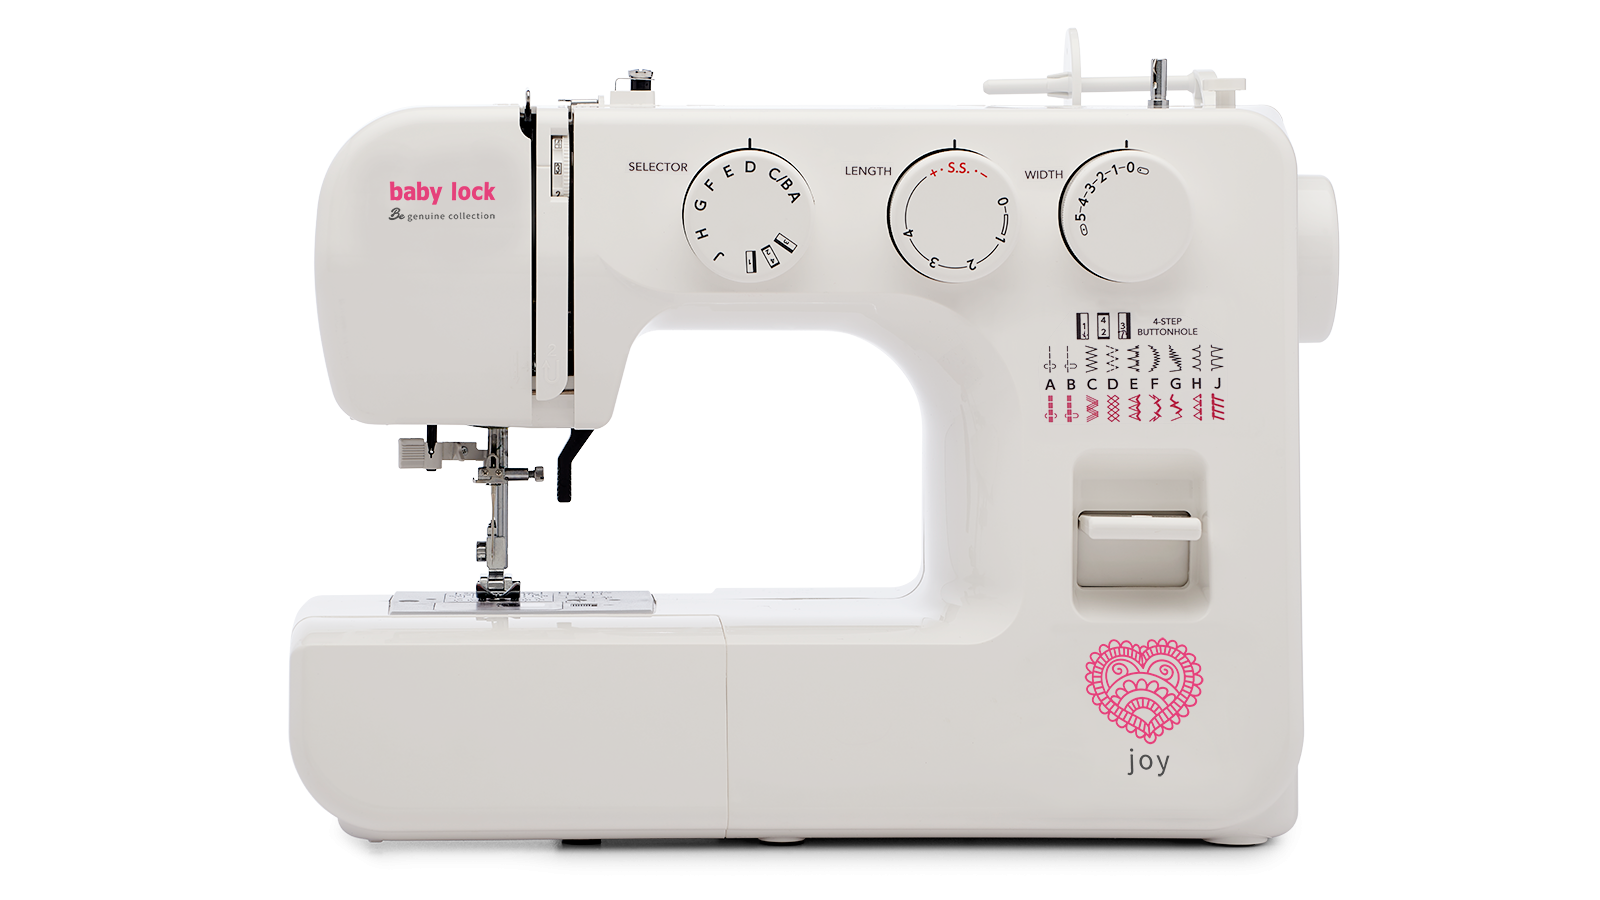 BL Machine - Joy Sewing Machine